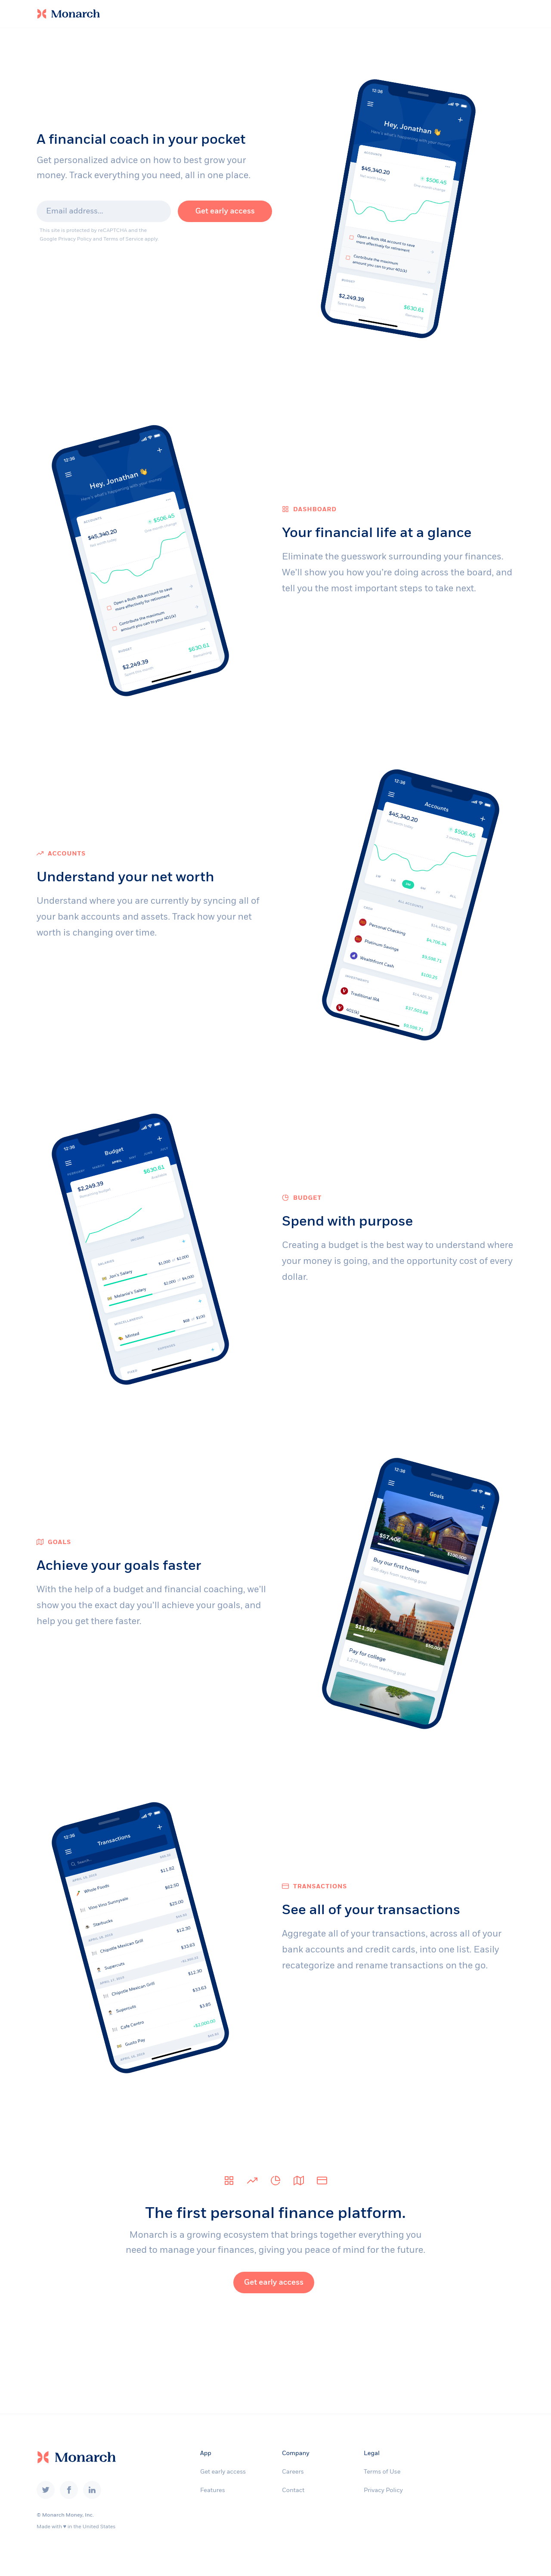 Example of Design for Finance, Financial Planning & Management, Landing Page by monarchmoney.com | Landing Page Design